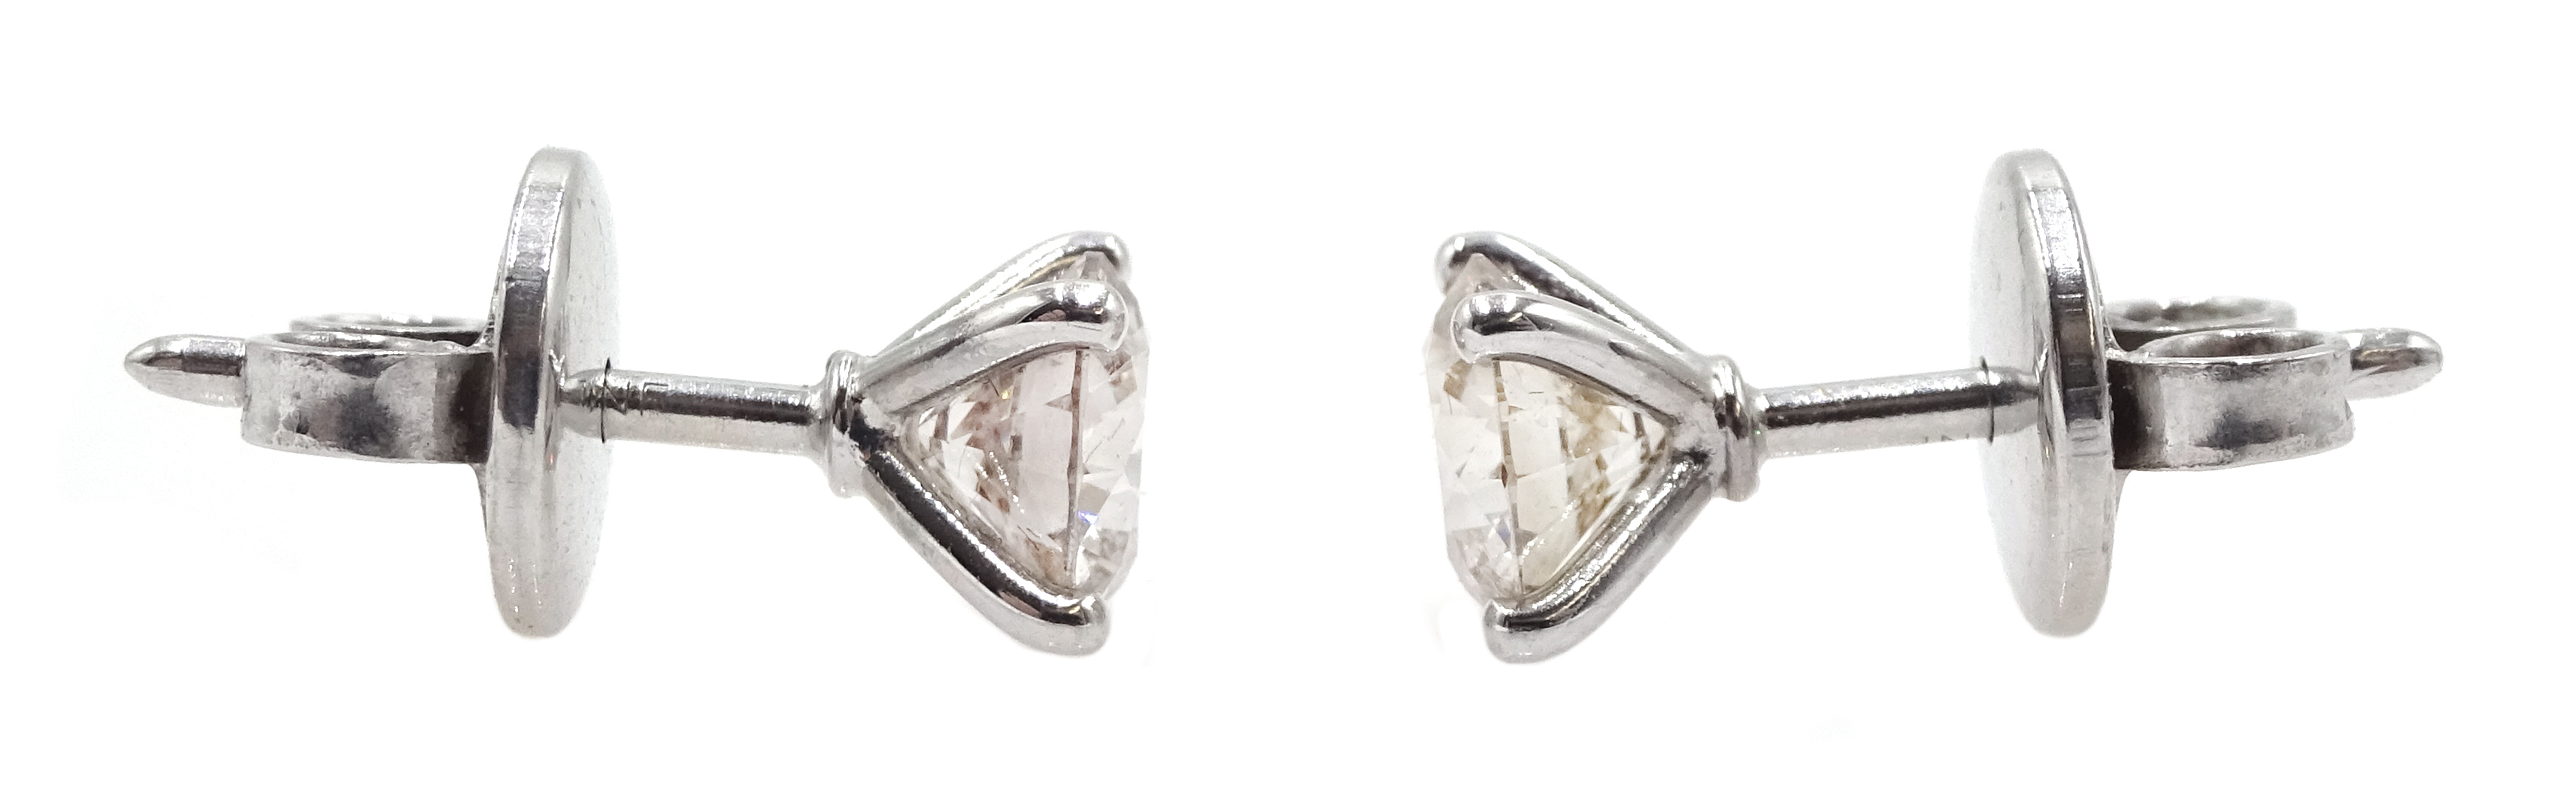 18ct white gold four claw solitaire diamond stud earrings - Image 3 of 3